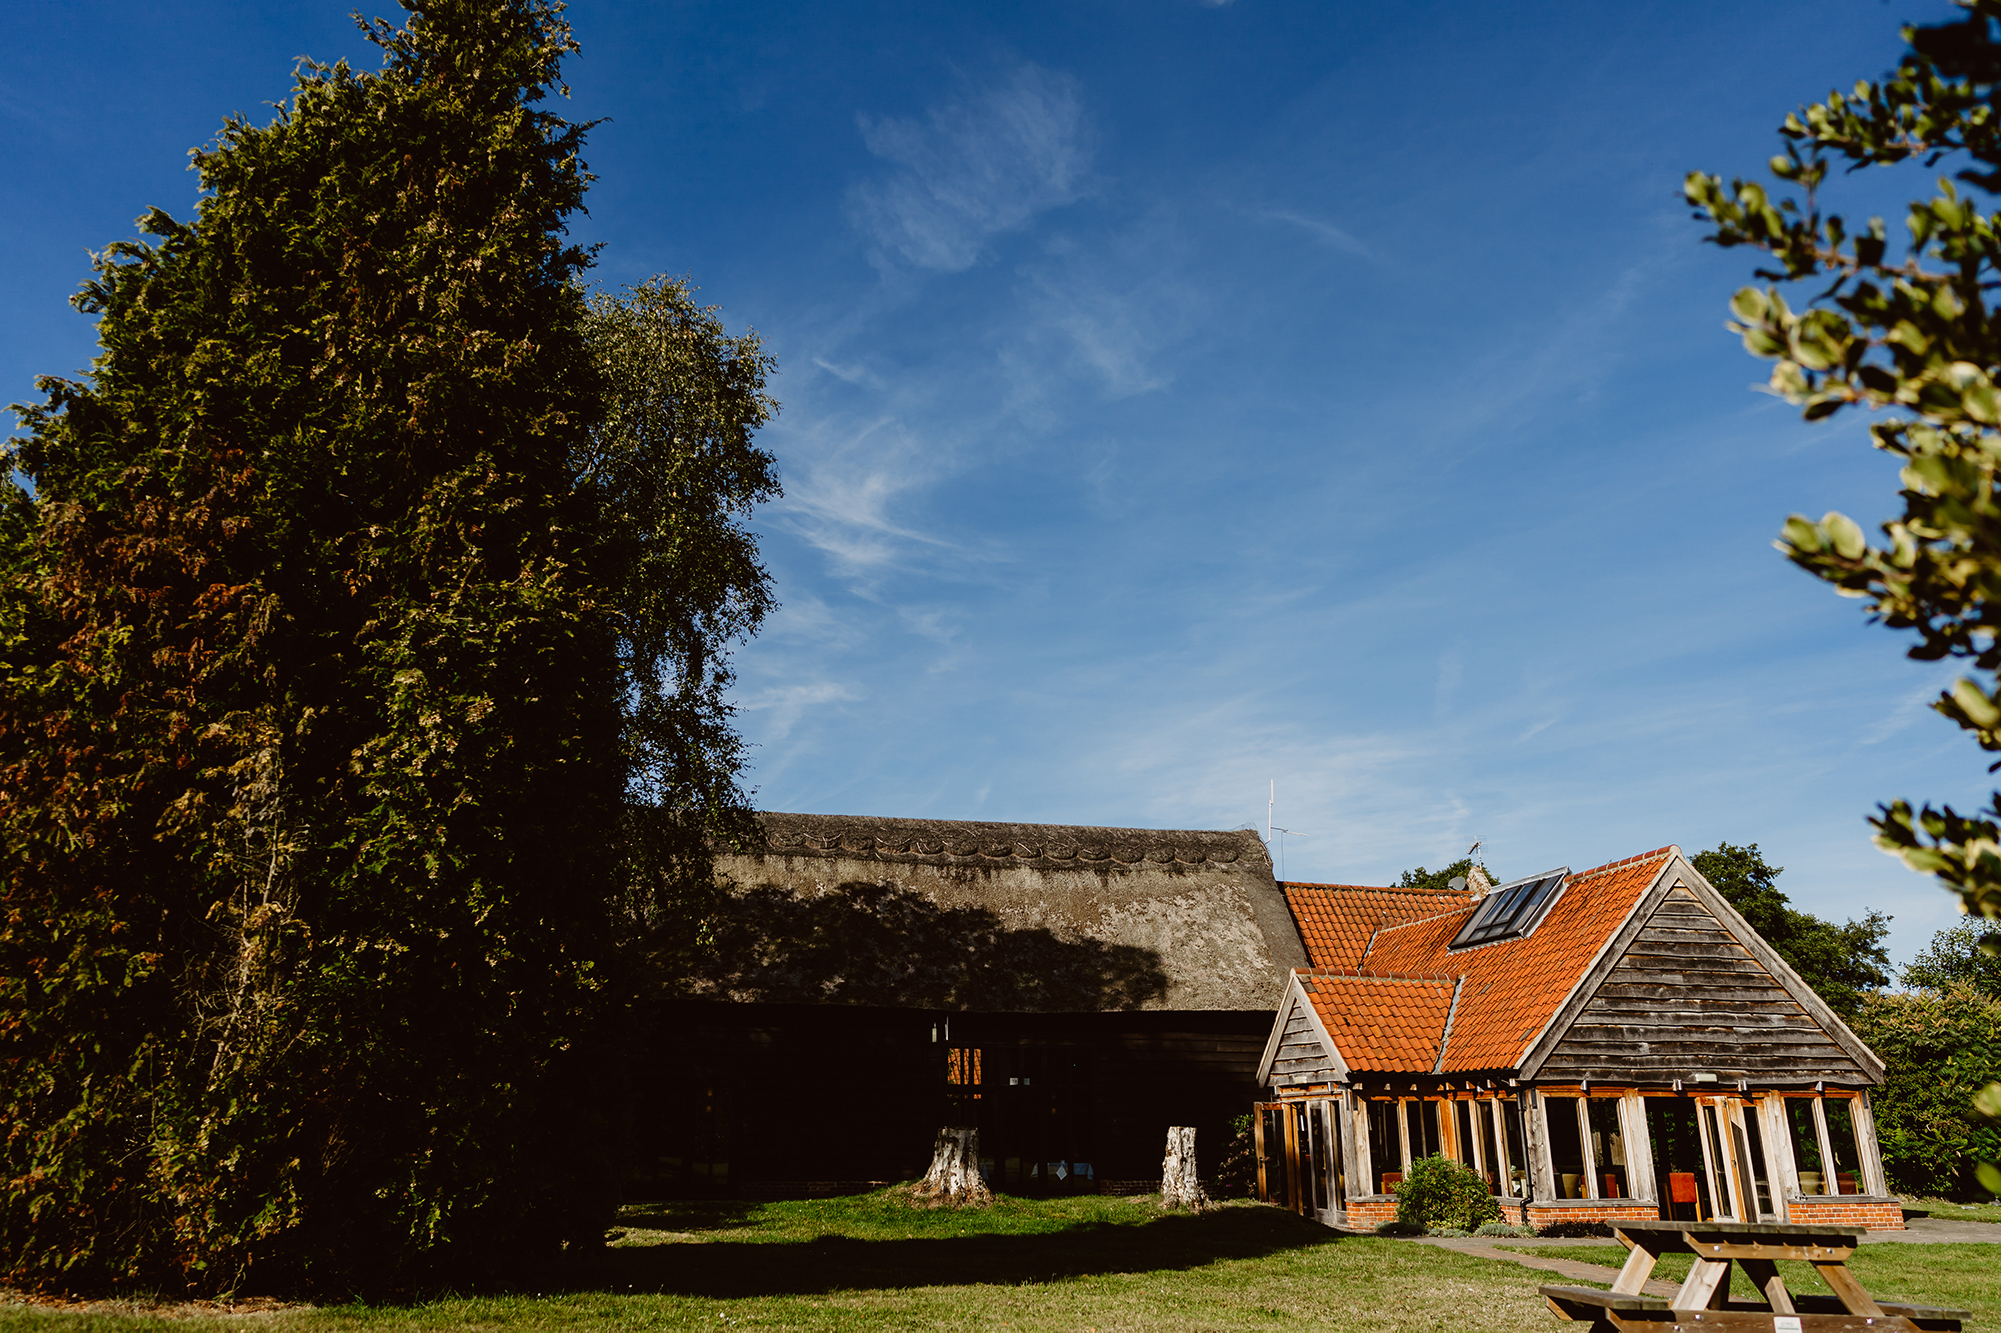 The Ivy House Country Hotel's Outdoor Wedding Venue